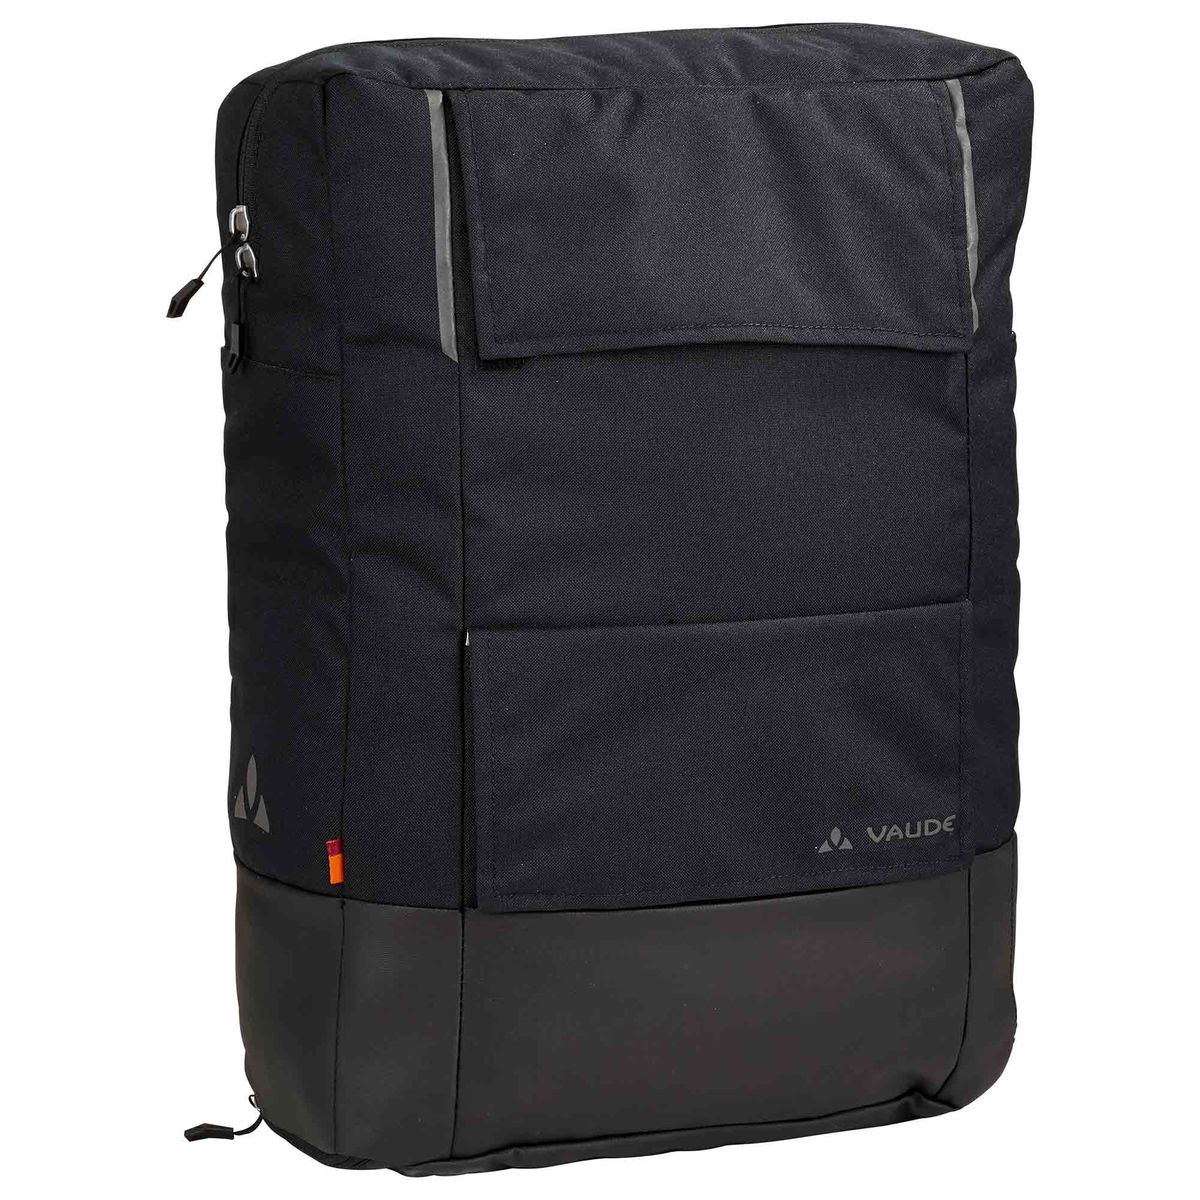 CYCLIST PACK backpack